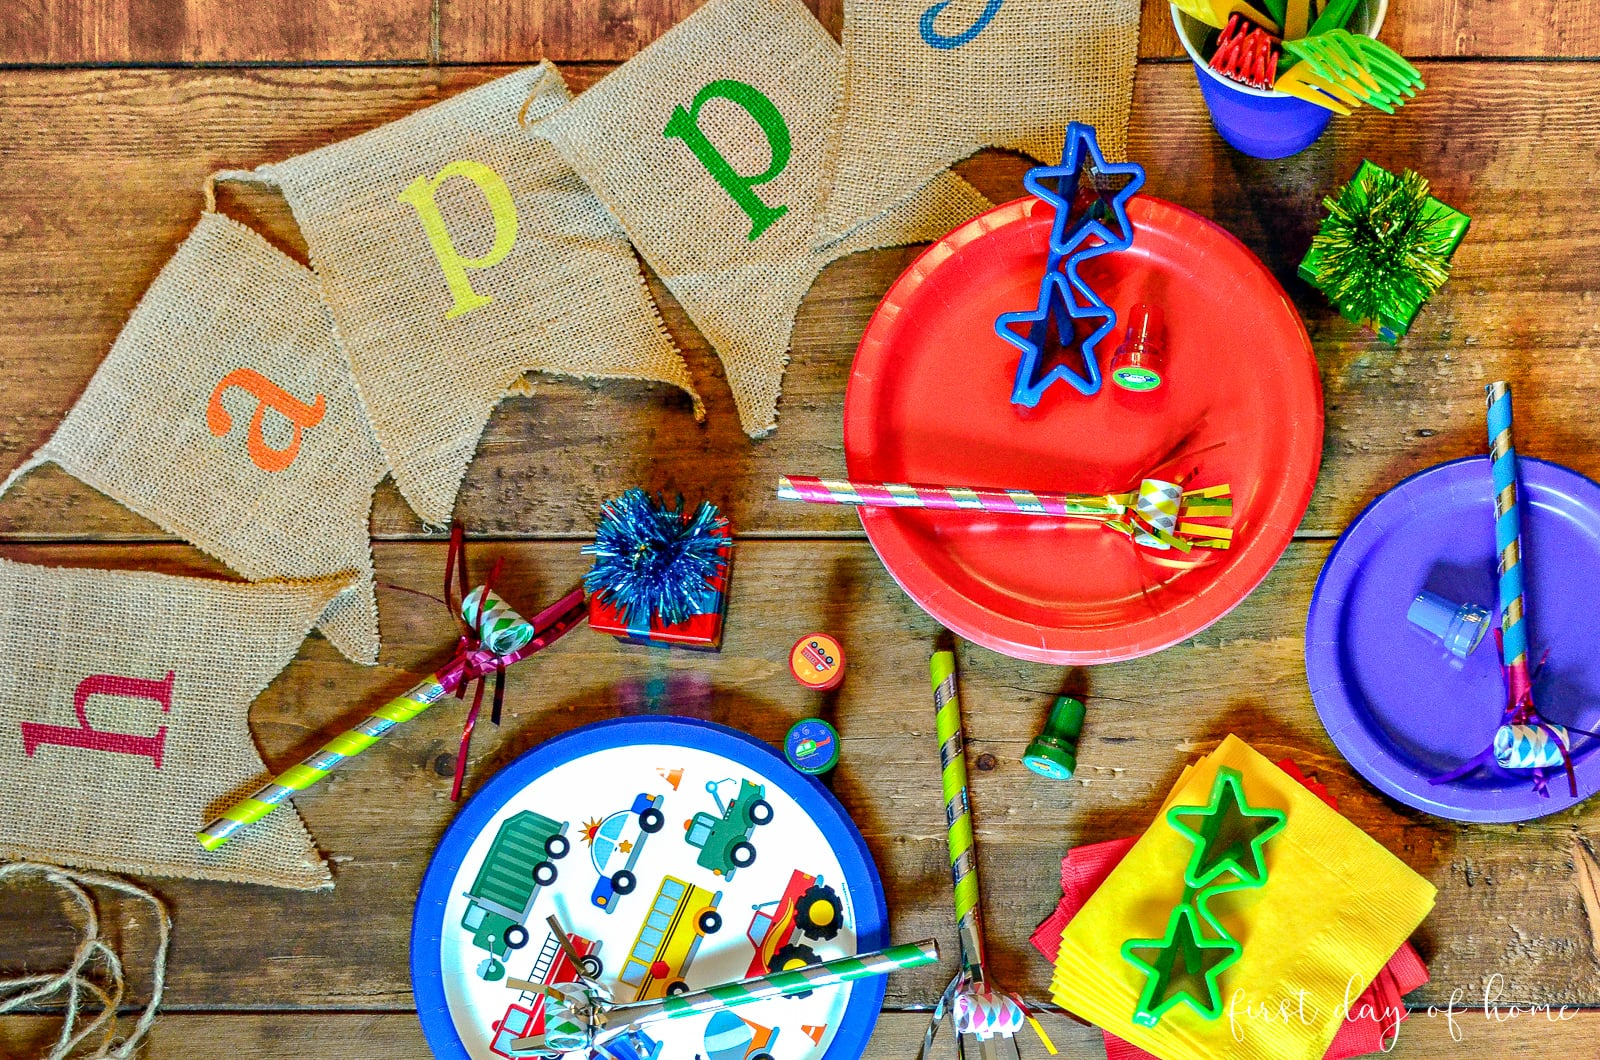 Transportation themed birthday party paper supplies, including transportation plates, napkins and favors;